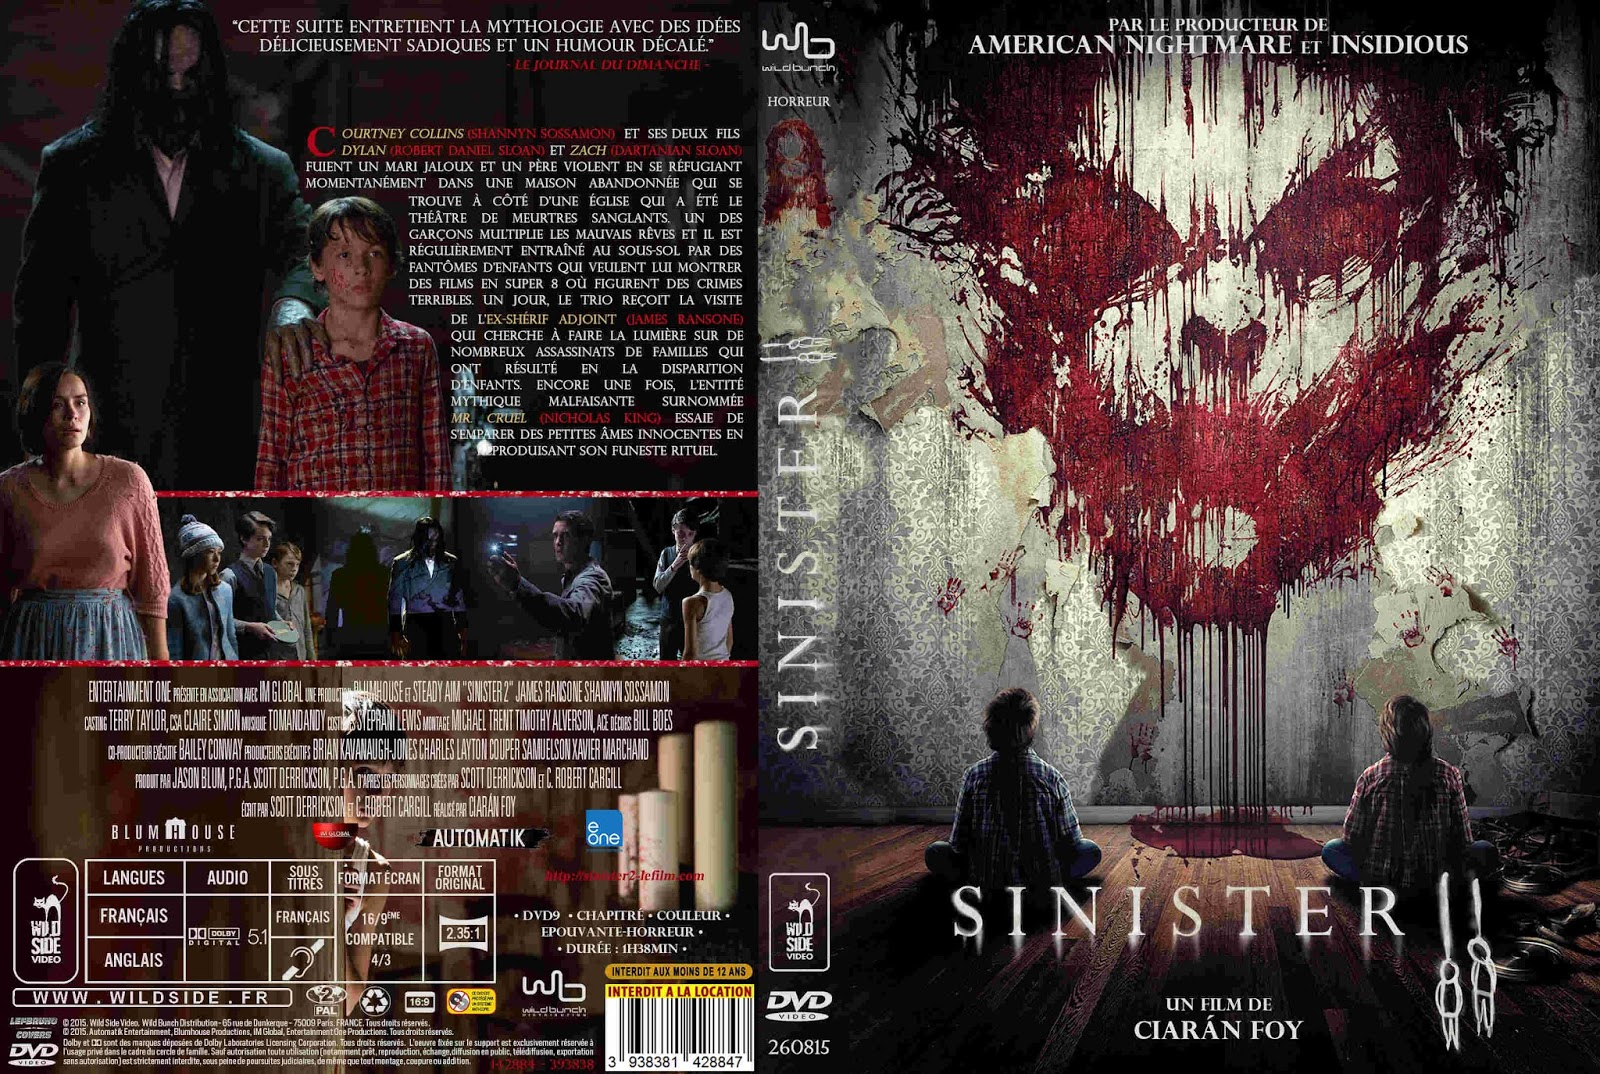 covers movie gtba sinister 2 2015 french cover label dvd movie